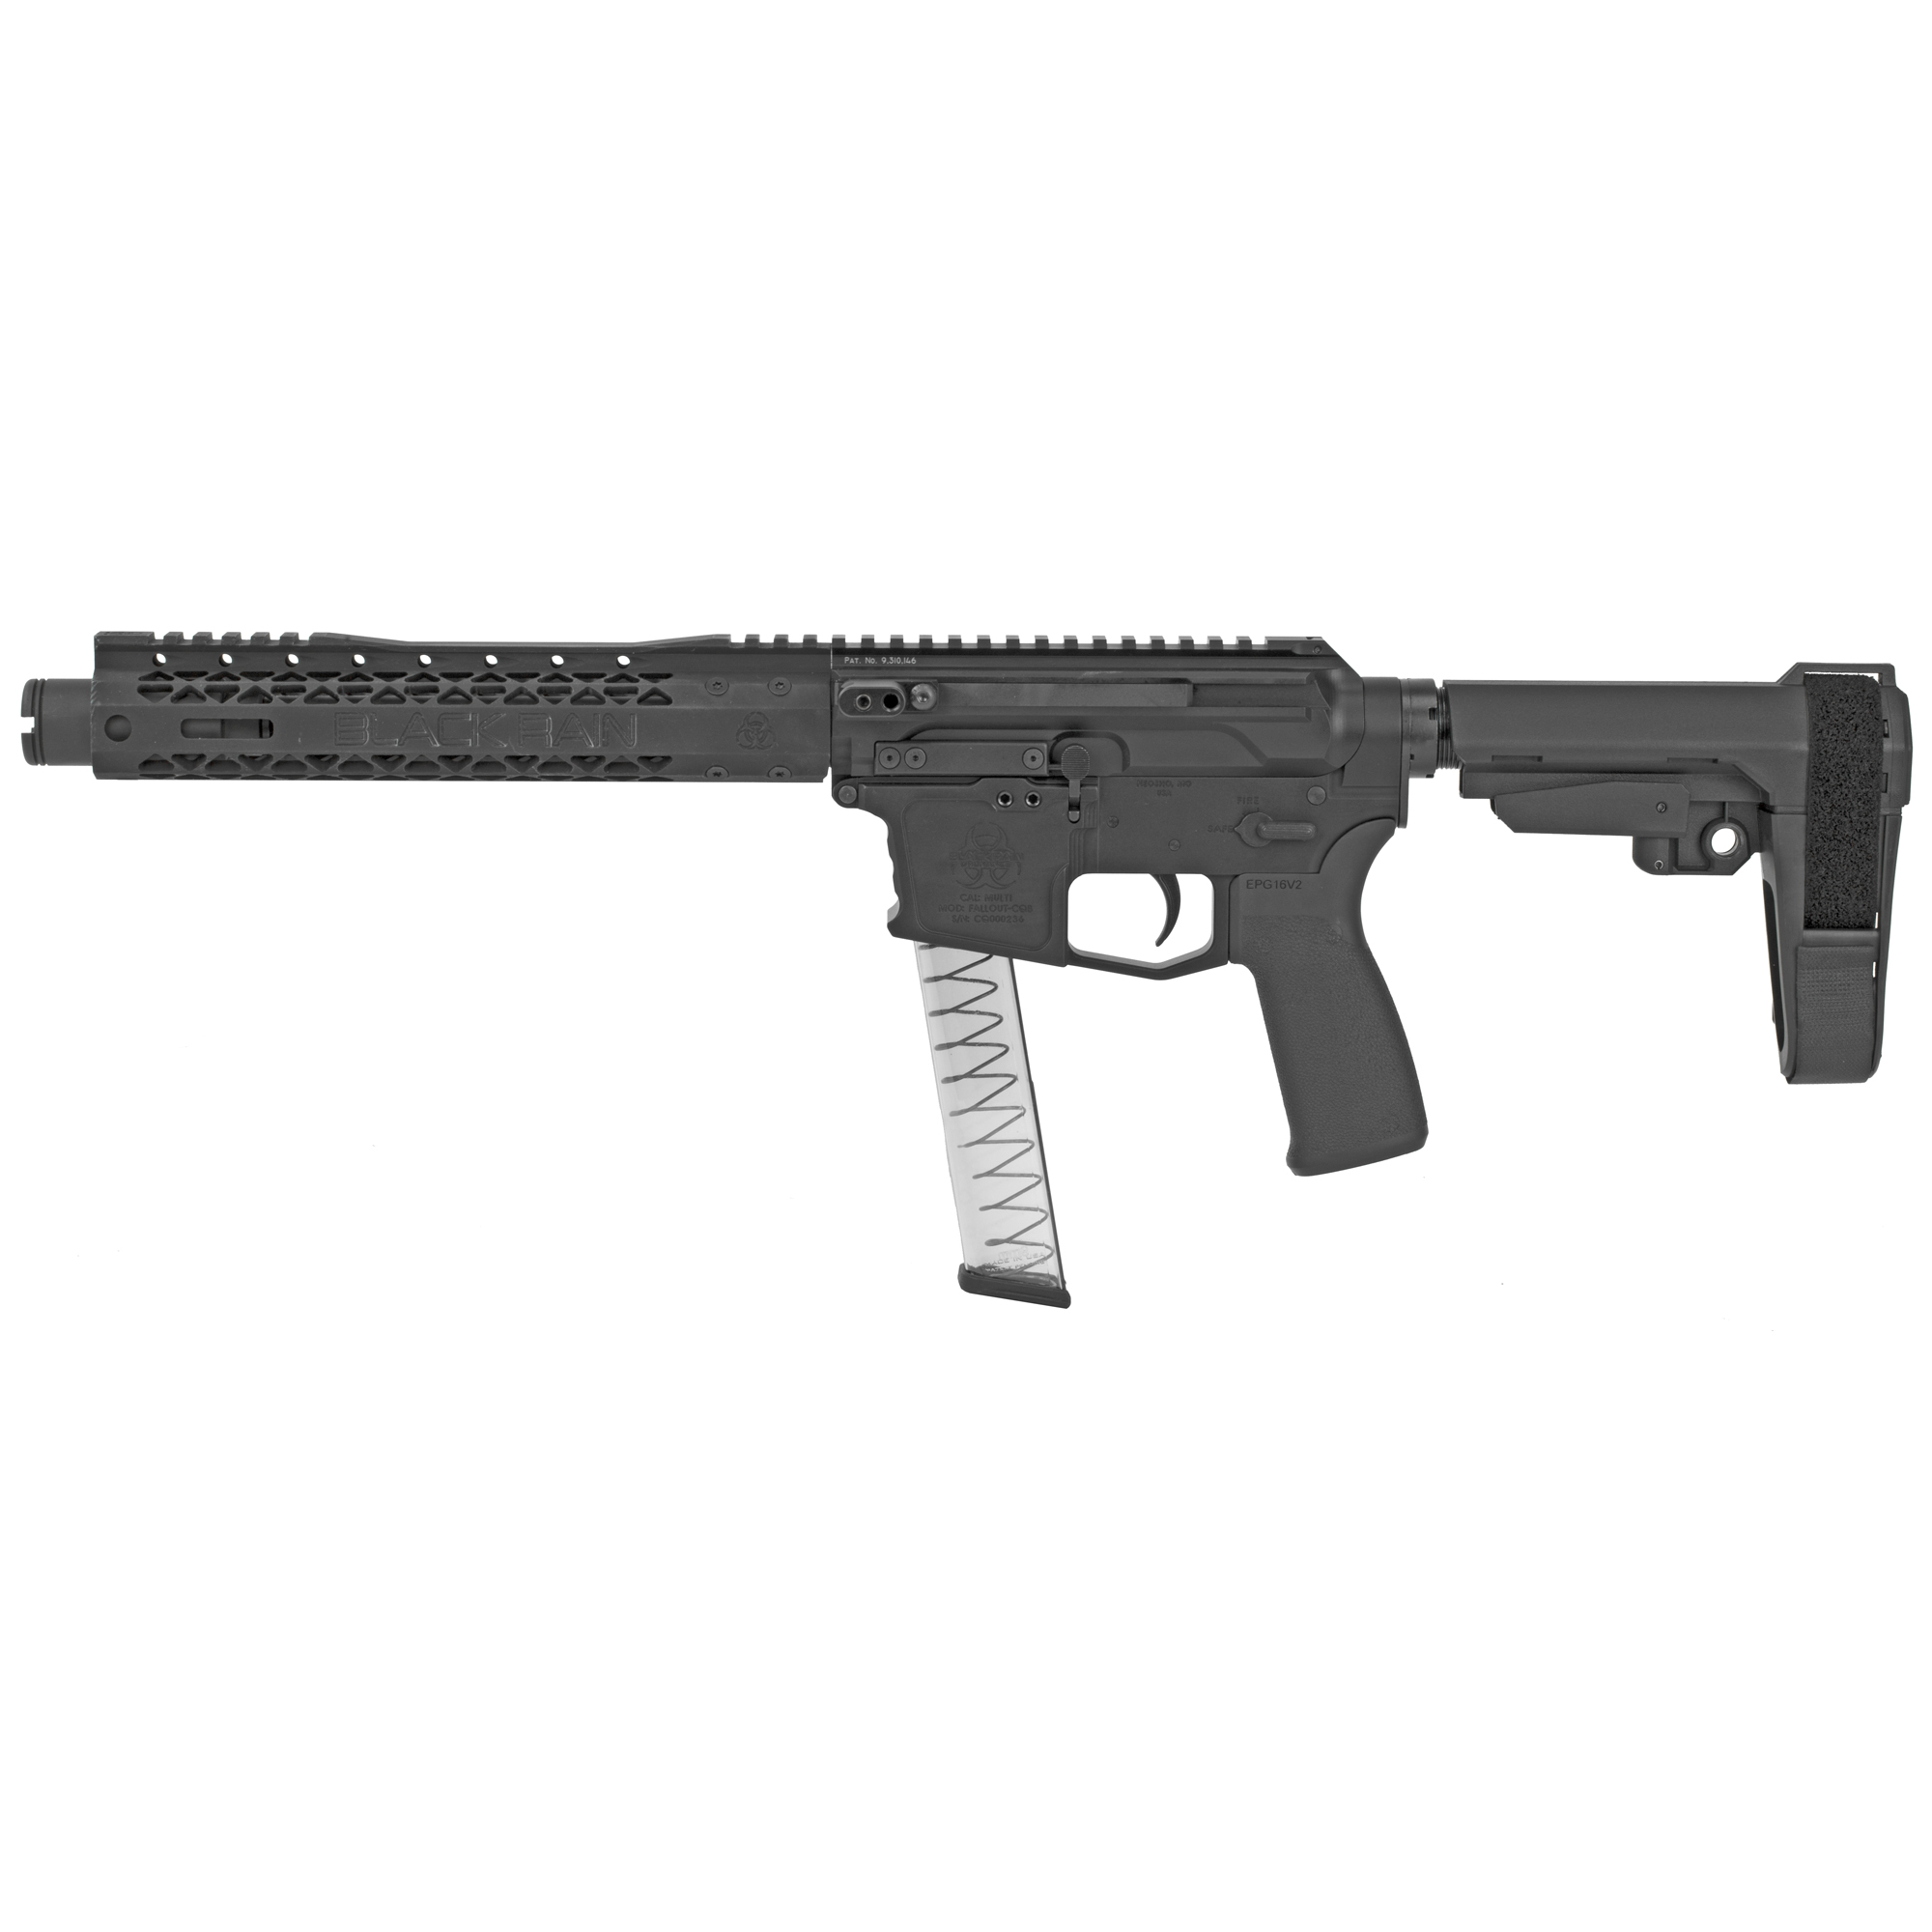 "Meet the all new Ion 9 from Black Rain Ordnance. The Ion 9 is a pistol caliber carbine which is fed from Glock Style magazines and is operated on a complete billet platform"" utilizing a patented side charging"" non-reciprocating upper"" that is mated to a dedicated billet lower featuring a flared magazine well for quick loading and reloading. With various build options within the Ion 9 series"" you are sure to find the next sub compact pistol caliber firearm which best fits your needs as a gun enthusiast."